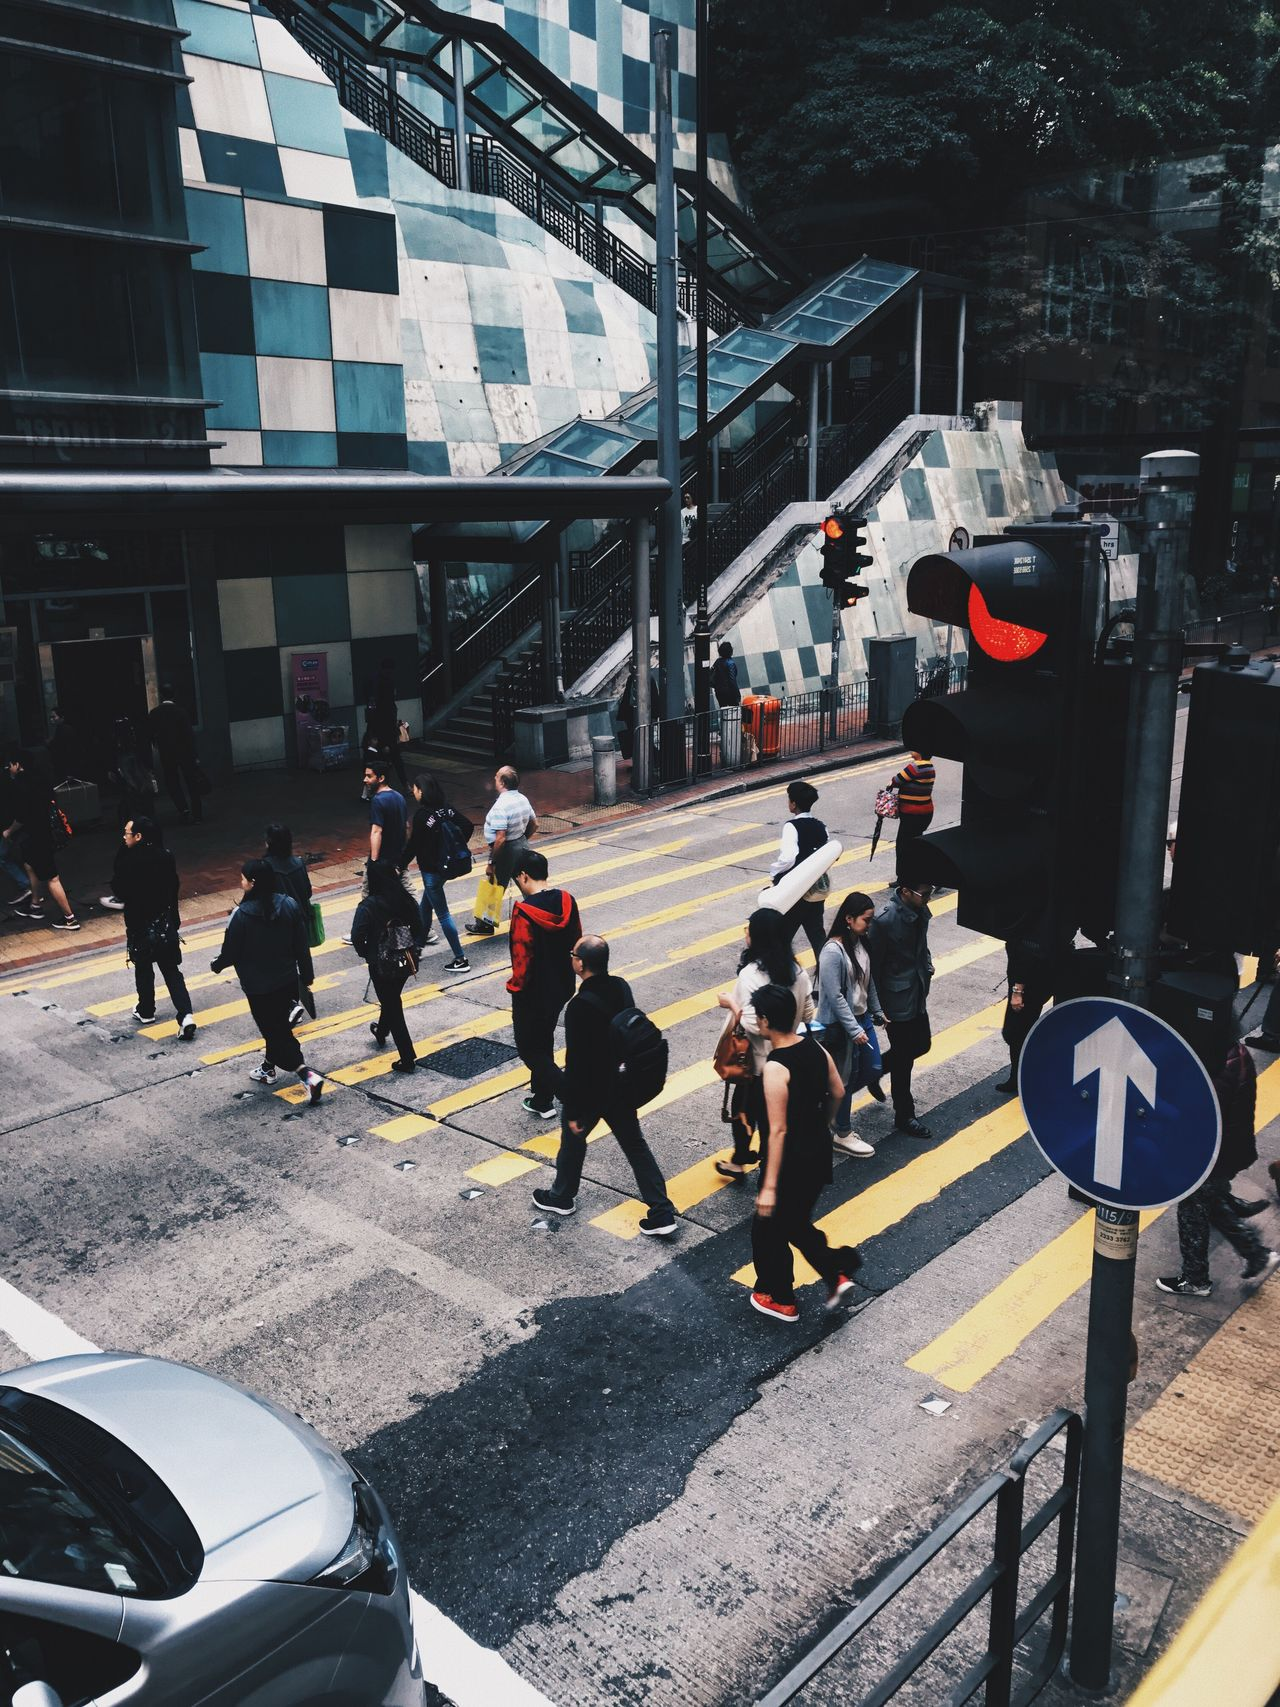 Live For The Story heart of Hong Kong Real People Lifestyles Day Transportation Built Structure Street Women Car Men Outdoors Architecture Full Length Building Exterior Road City Adult People The Street Photographer - 2017 EyeEm Awards